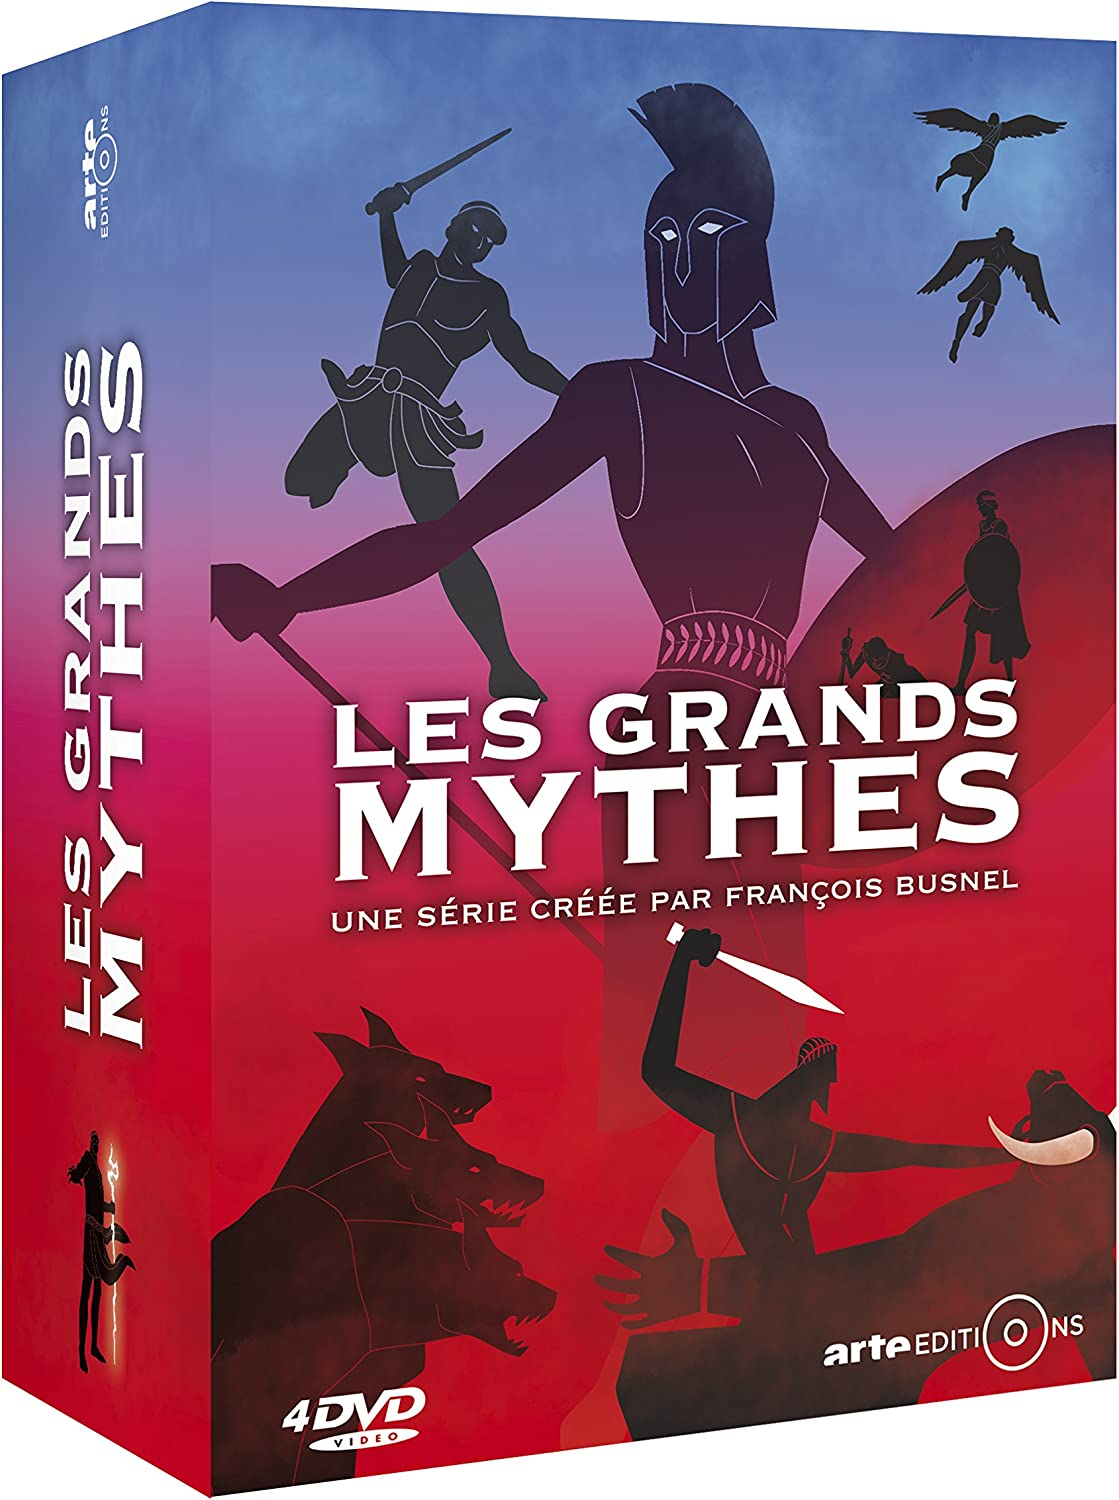 Les Grands Mythes: DVD & Blu-ray : Amazon.fr